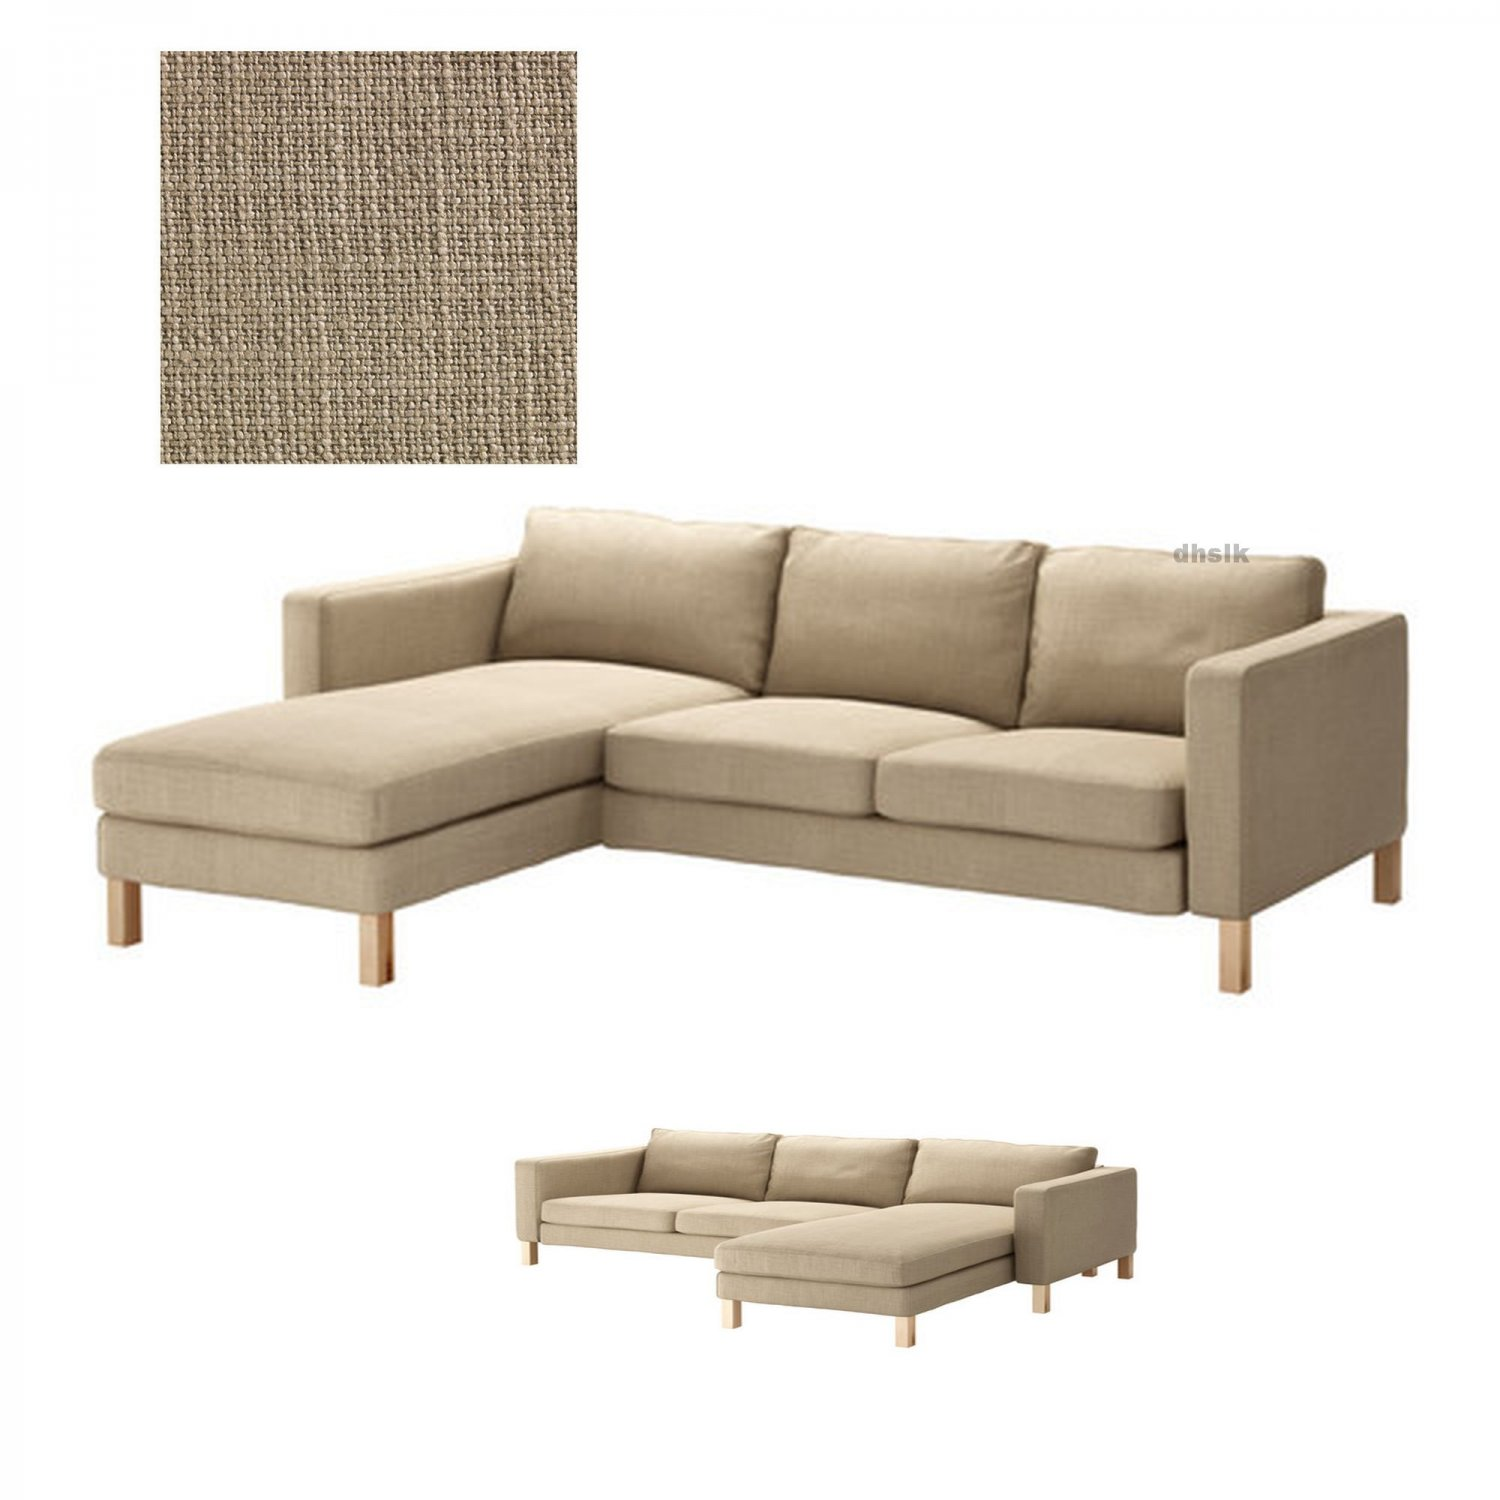 ikea sofa coverings scandinavian style sofas uk karlstad 2 seat loveseat and chaise slipcover